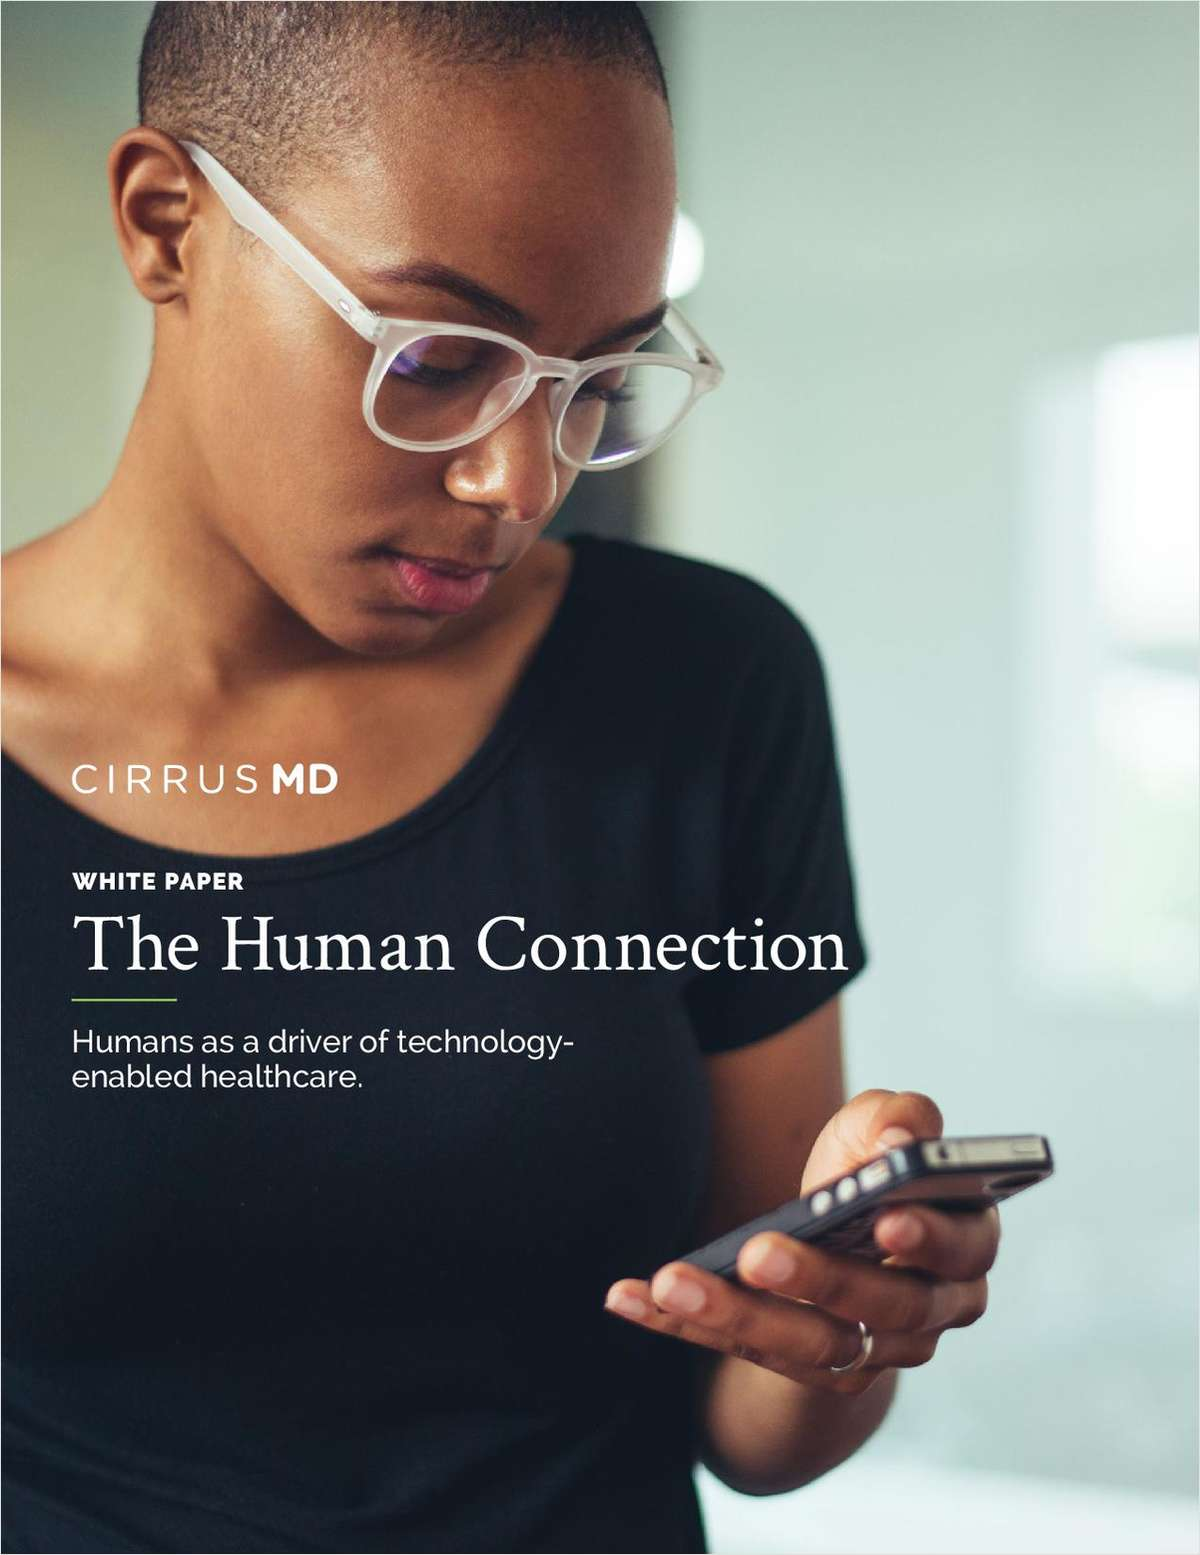 The Human Connection: Humans As a Driver of Technology-Enabled Healthcare